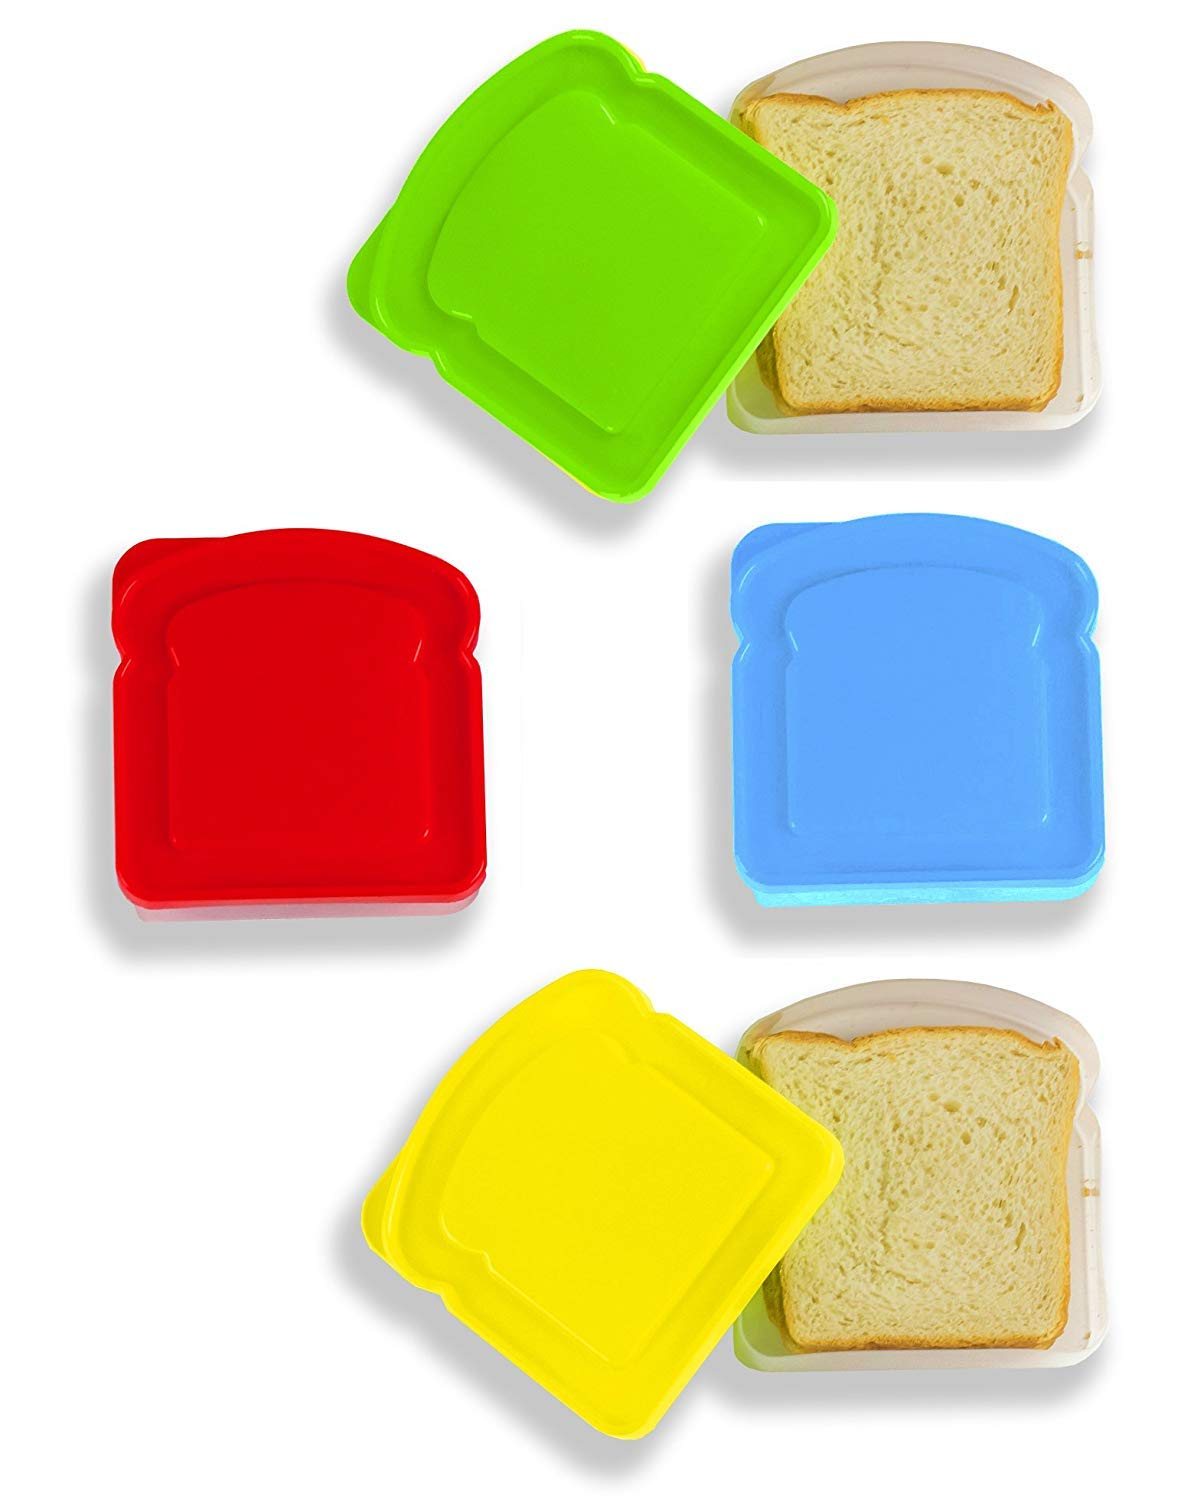 DecorRack 4 Pack Sandwich Containers -BPA FREE- Plastic Sandwich Box for Kids and Adults, Food Storage Container for Lunch and Snacks (Assorted)